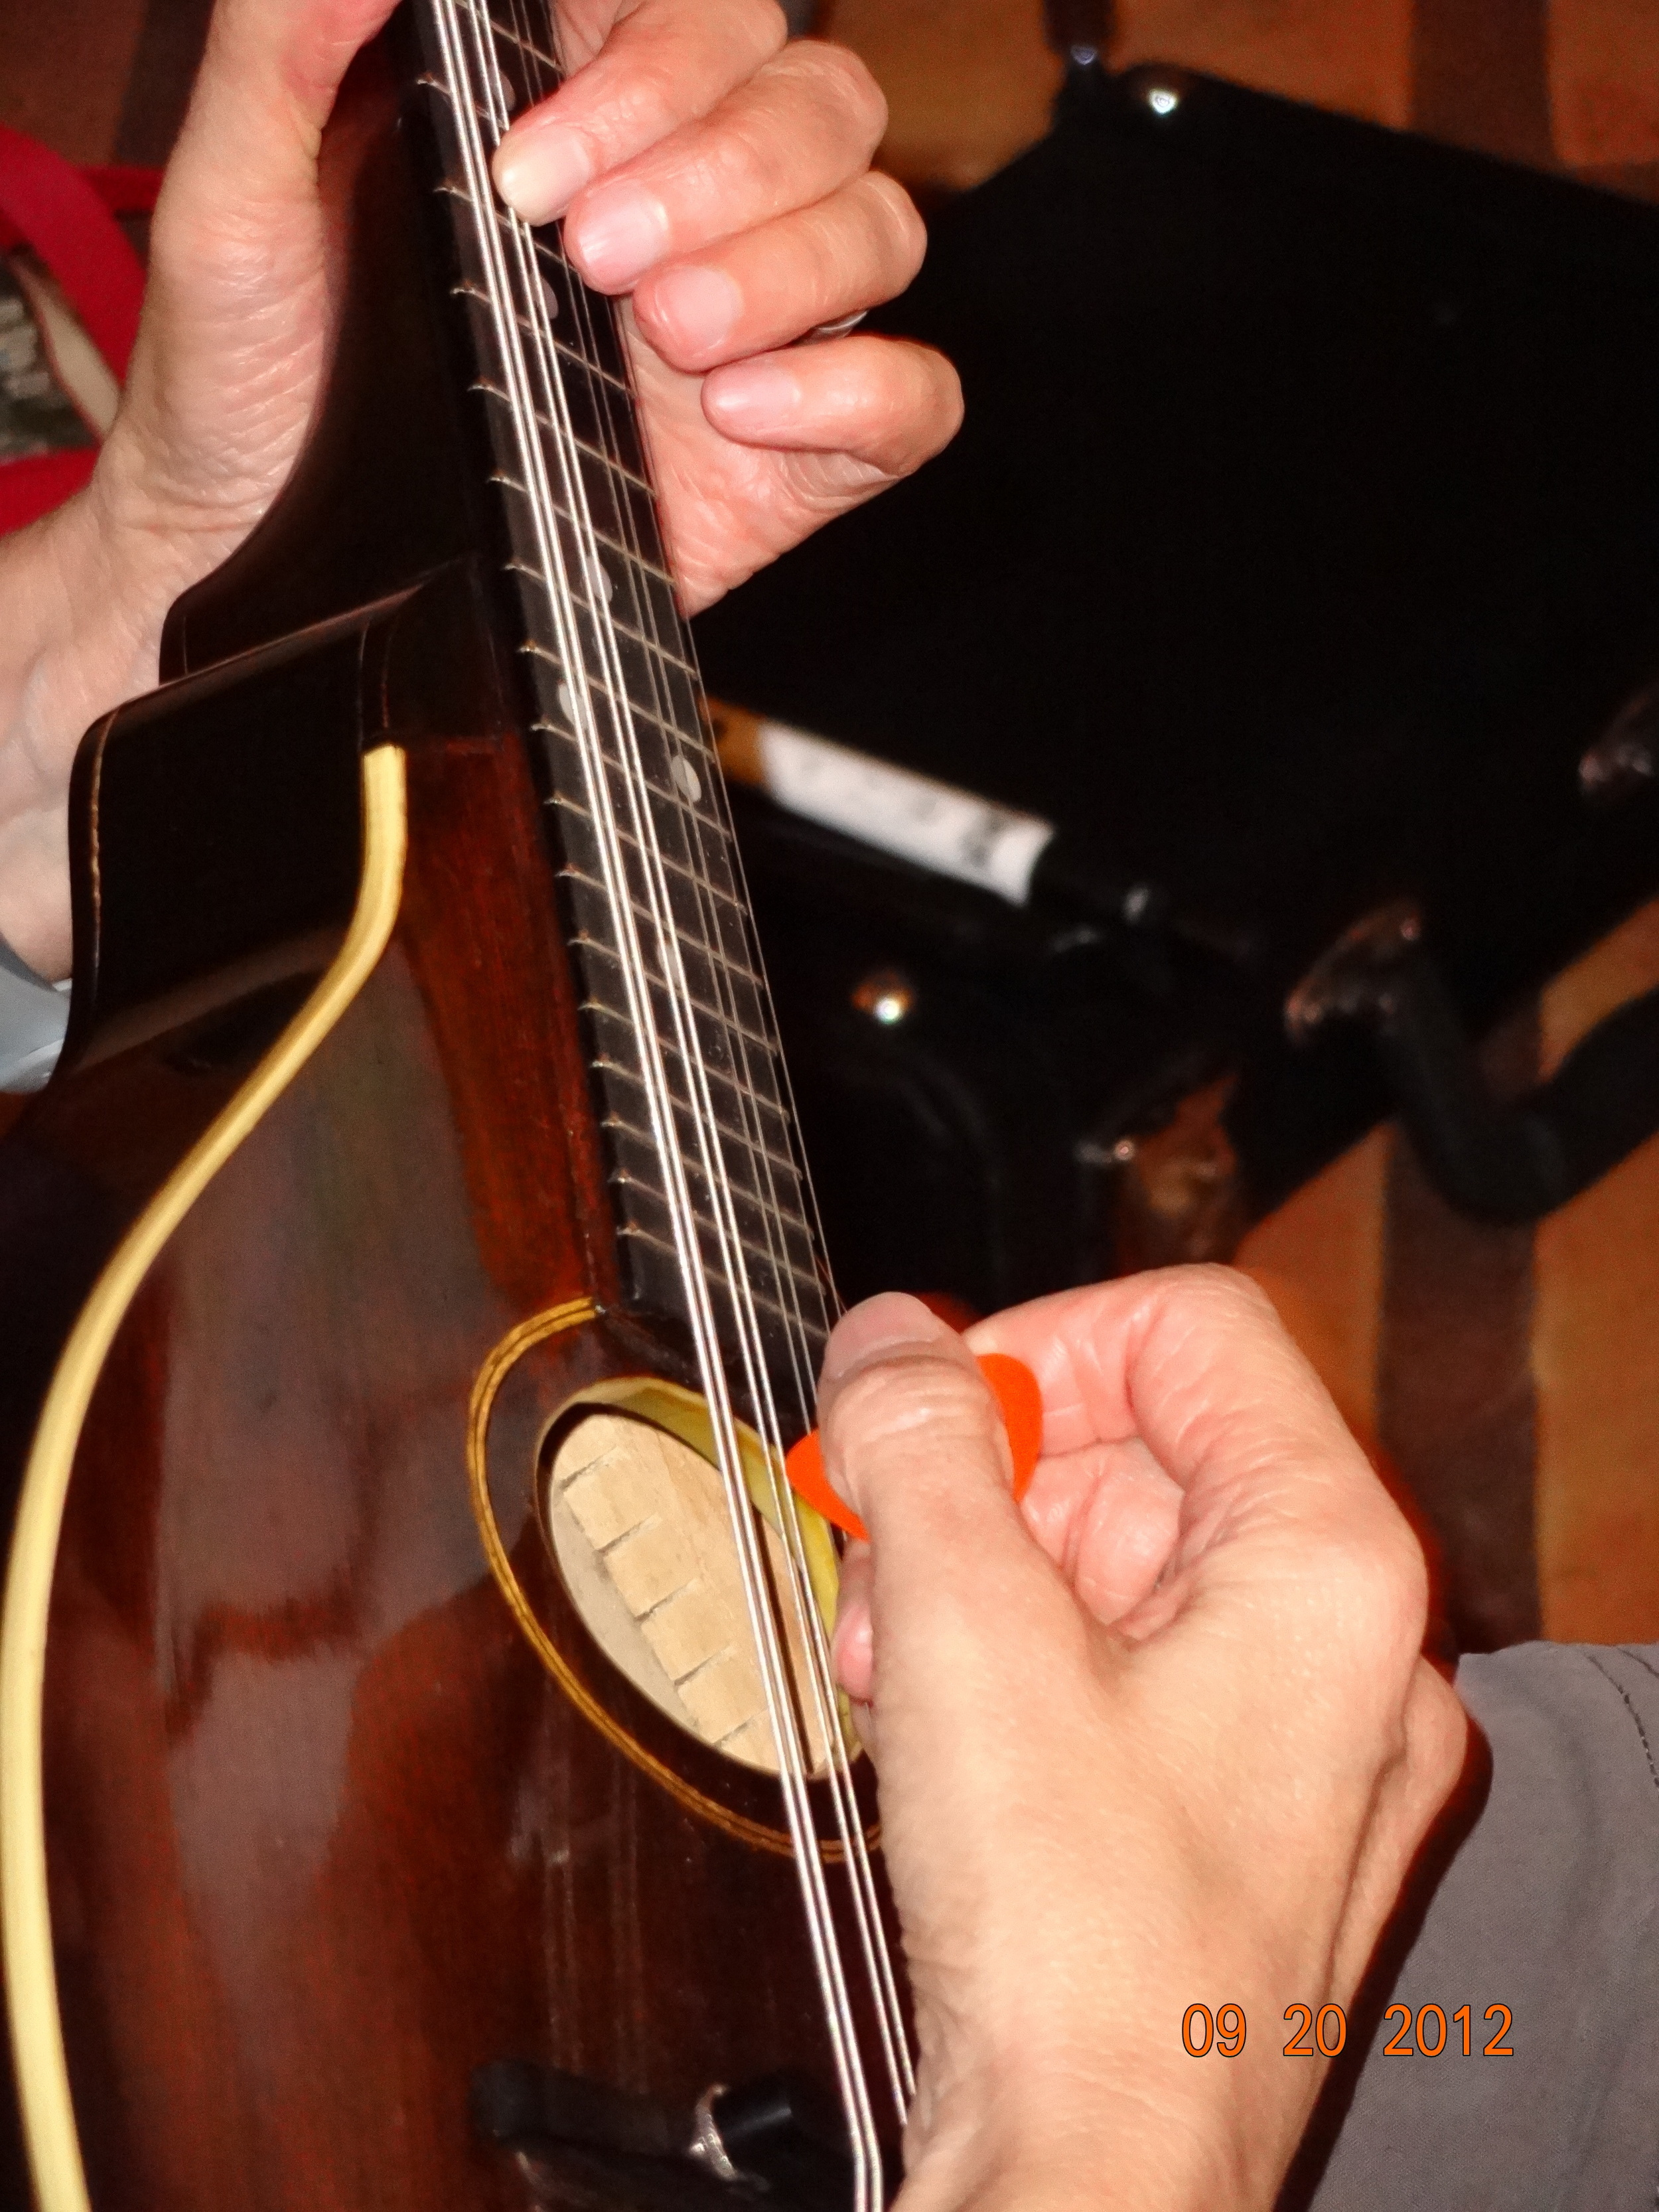 limell' plays a 1915 Chocolate Gibson